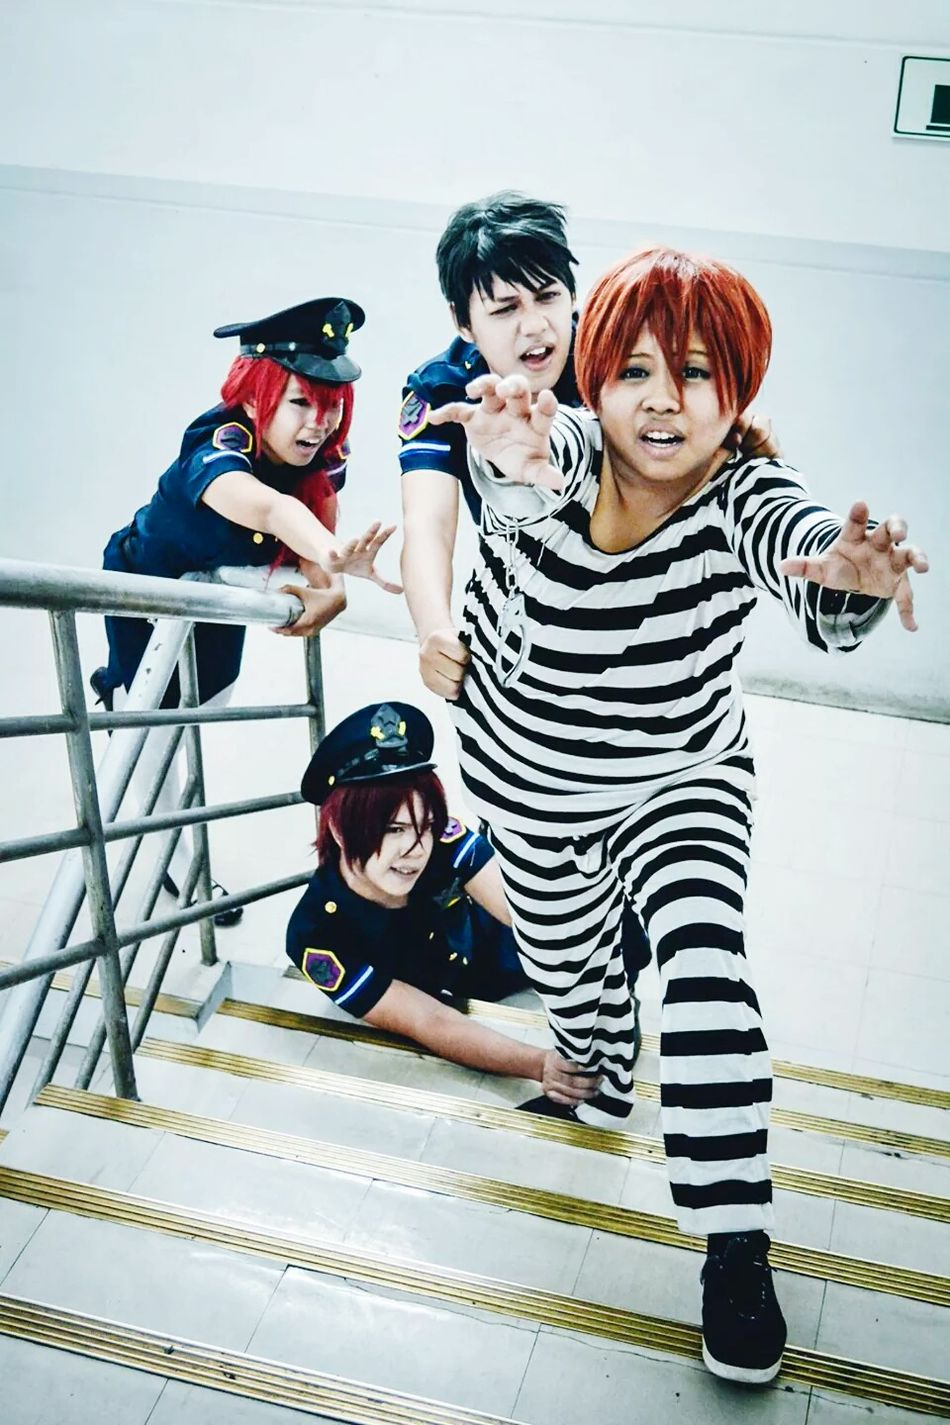 We're gonna get ya Momo! Future Fish from Free! with bacolod friends :) photo by Ian Obles ♥ Eyeem Philippines Cagayan De Oro City Cosplay